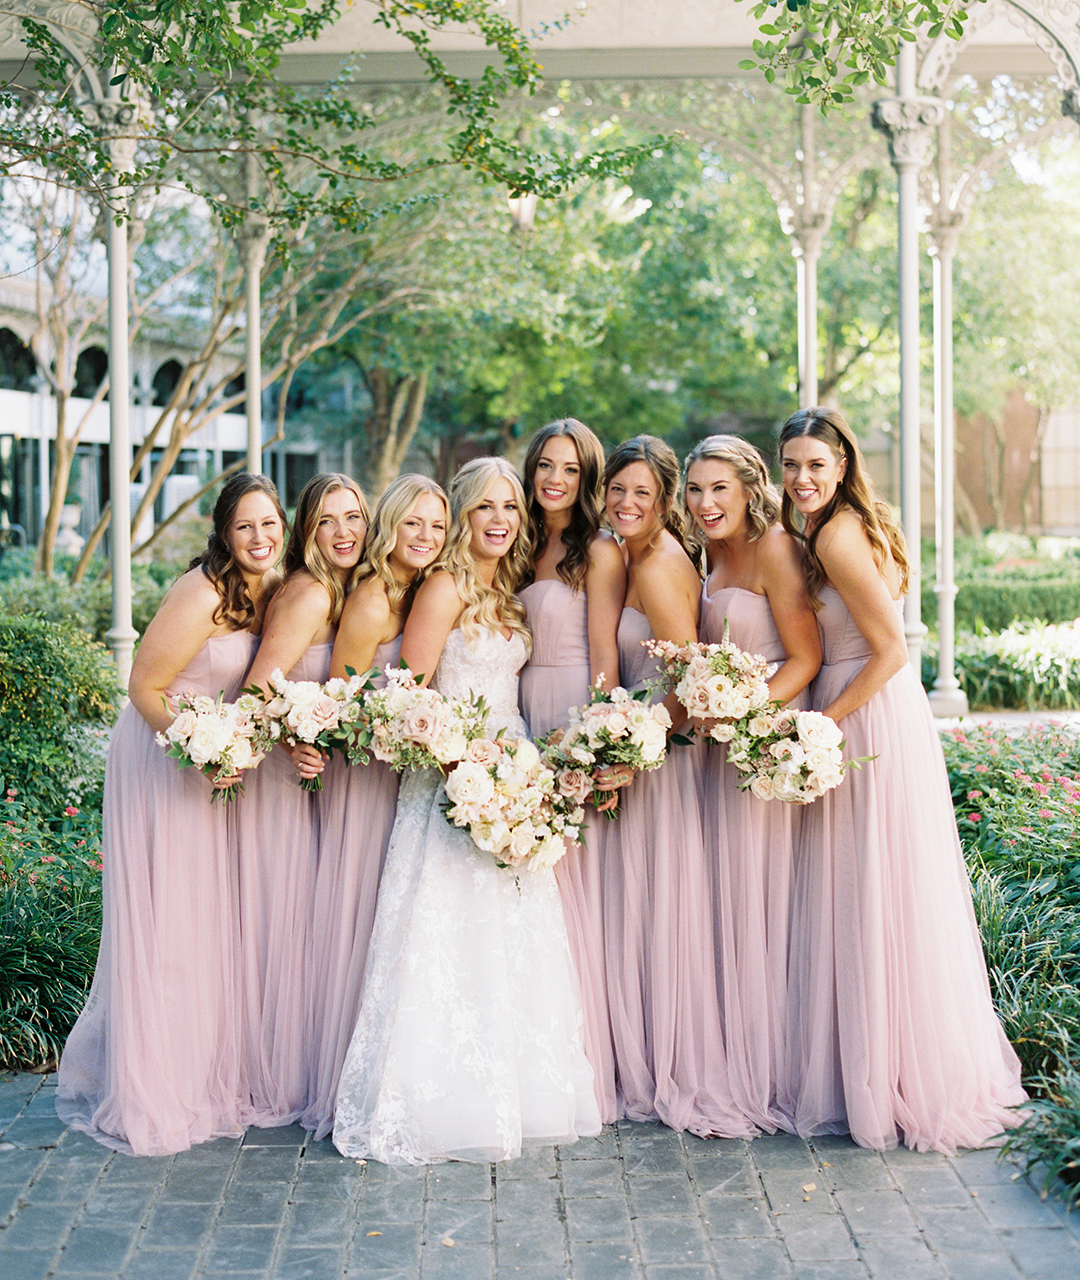 dusty blush color bridesmaid gowns